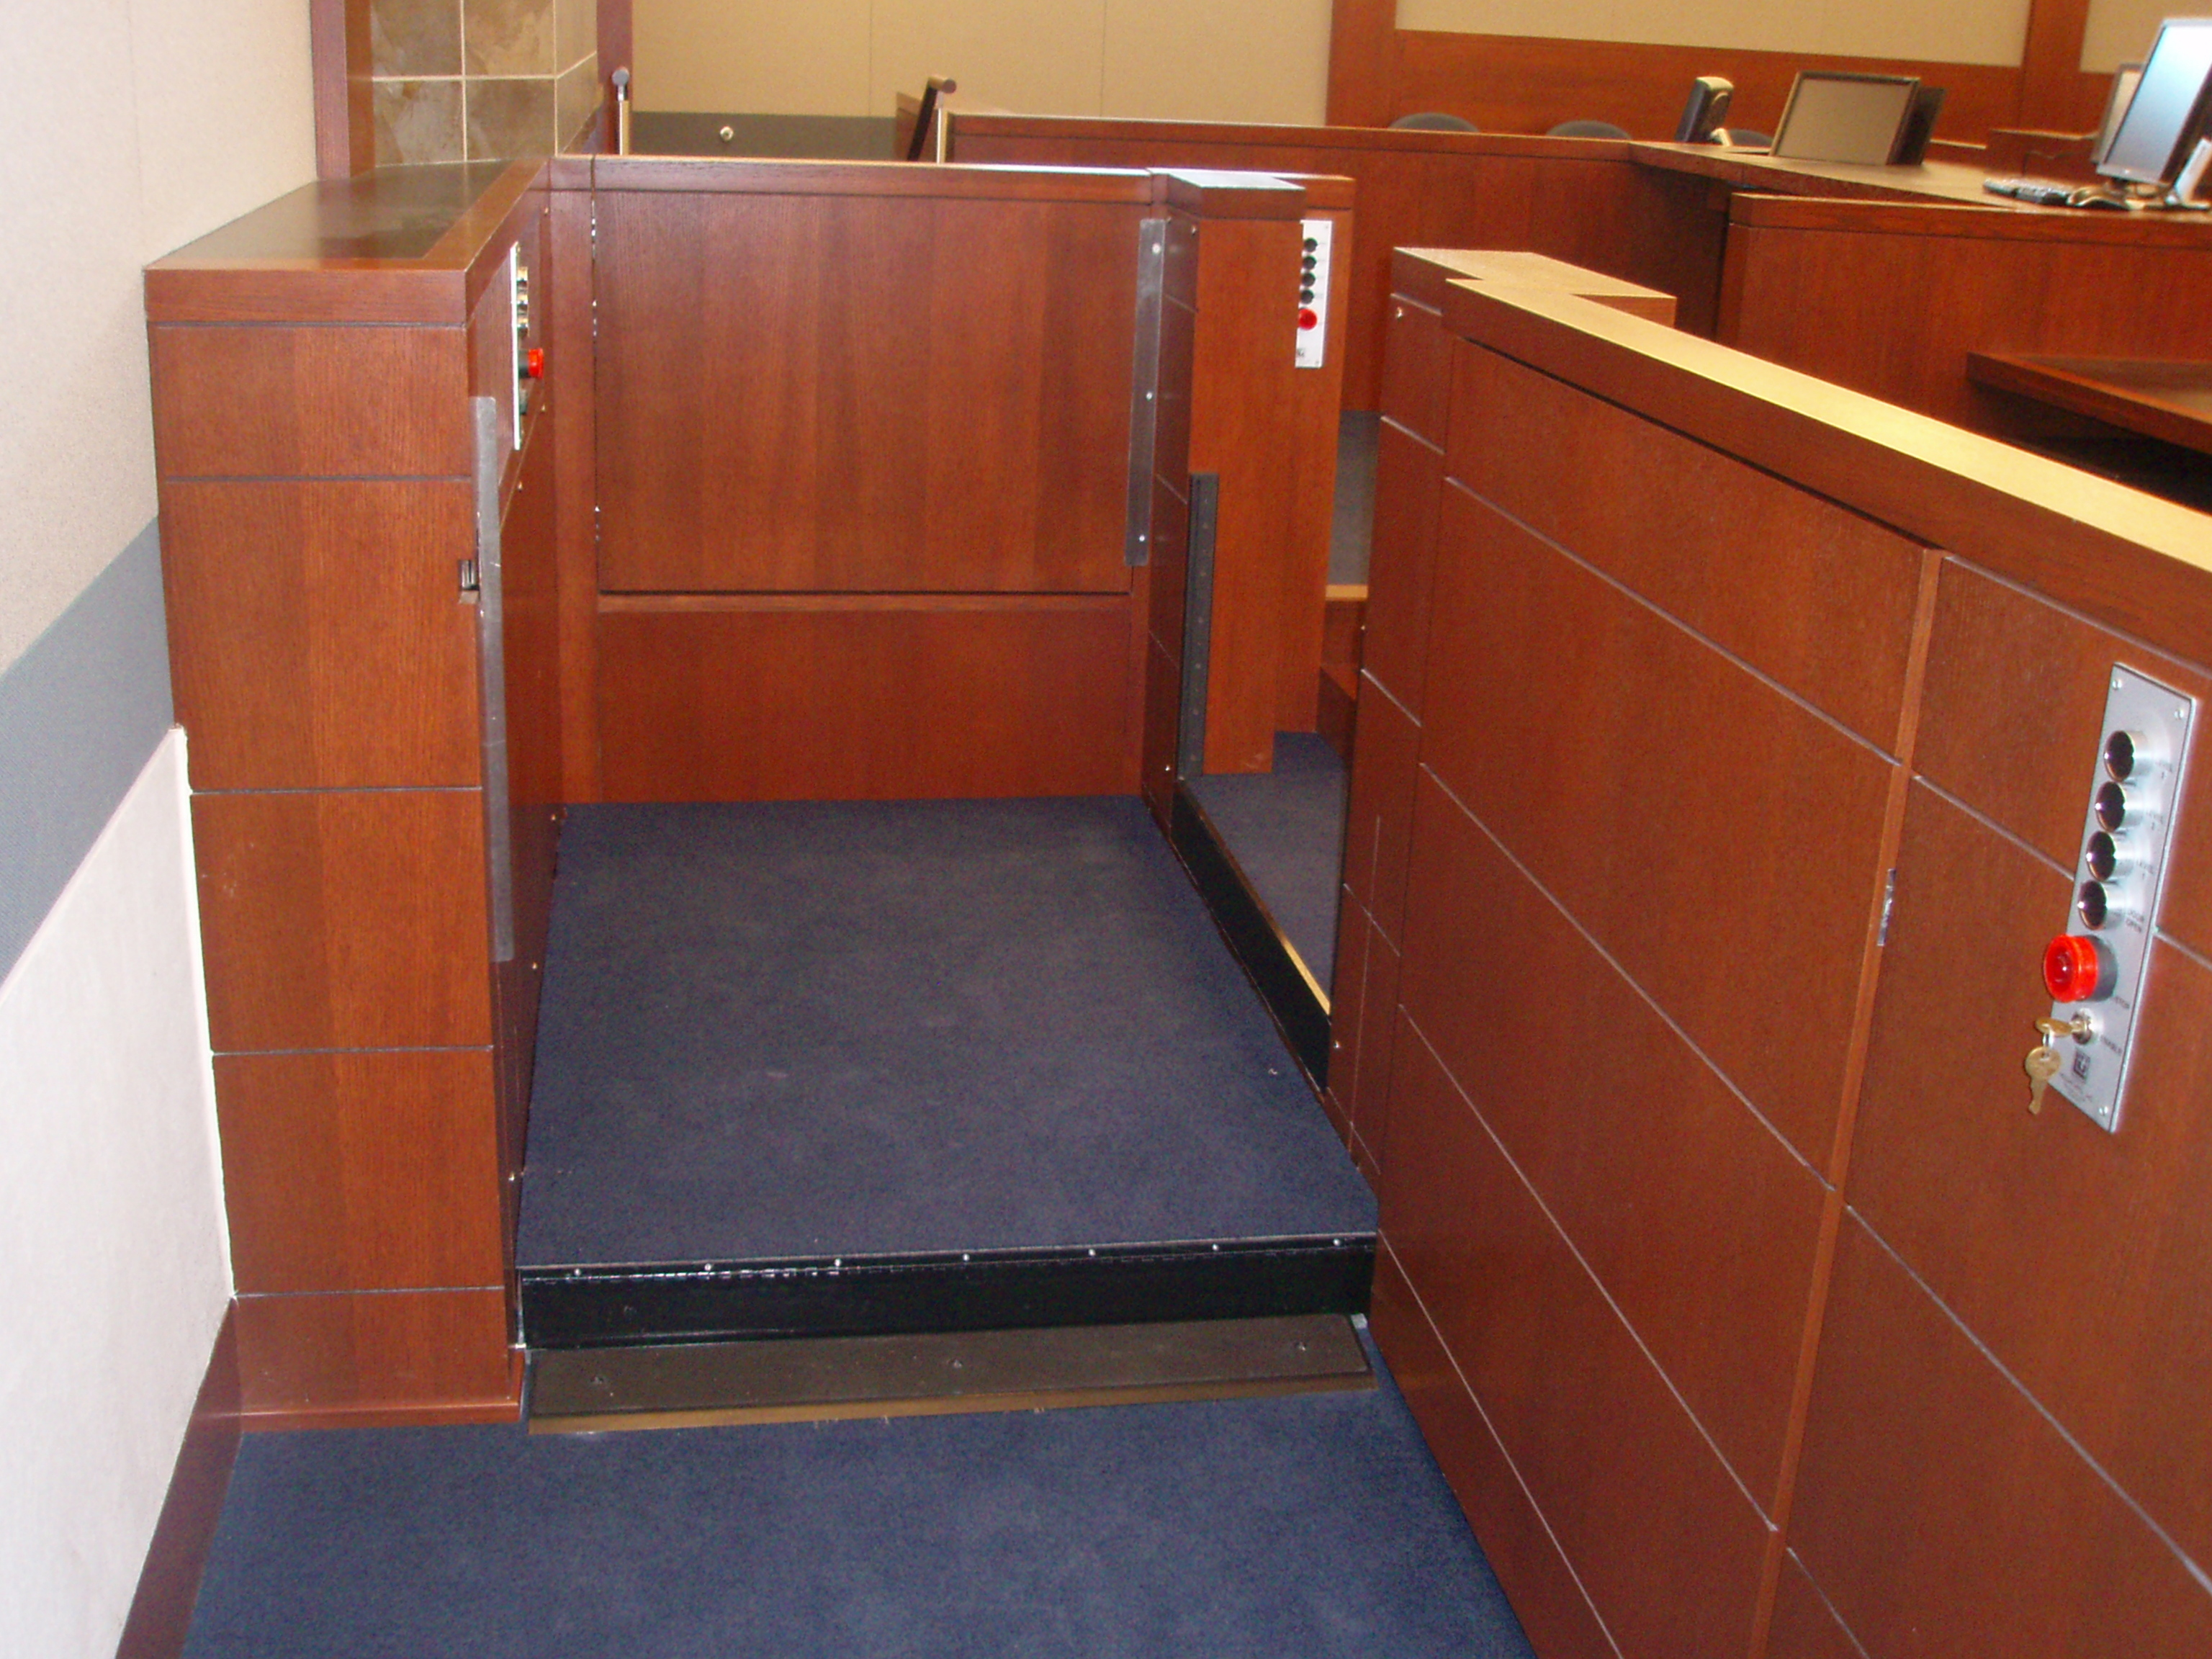 Lift positioned at the second of four levels. The third level is a ninety degree egress to the witness stand. The fourth level is a straight through egress to the judge's bench. Equipped with threshold ramp to allow wheelchair access when the lift is at the lower level. Lift encased in wood millwork blending in with courtroom millwork. Lift is readily available and independently operable.